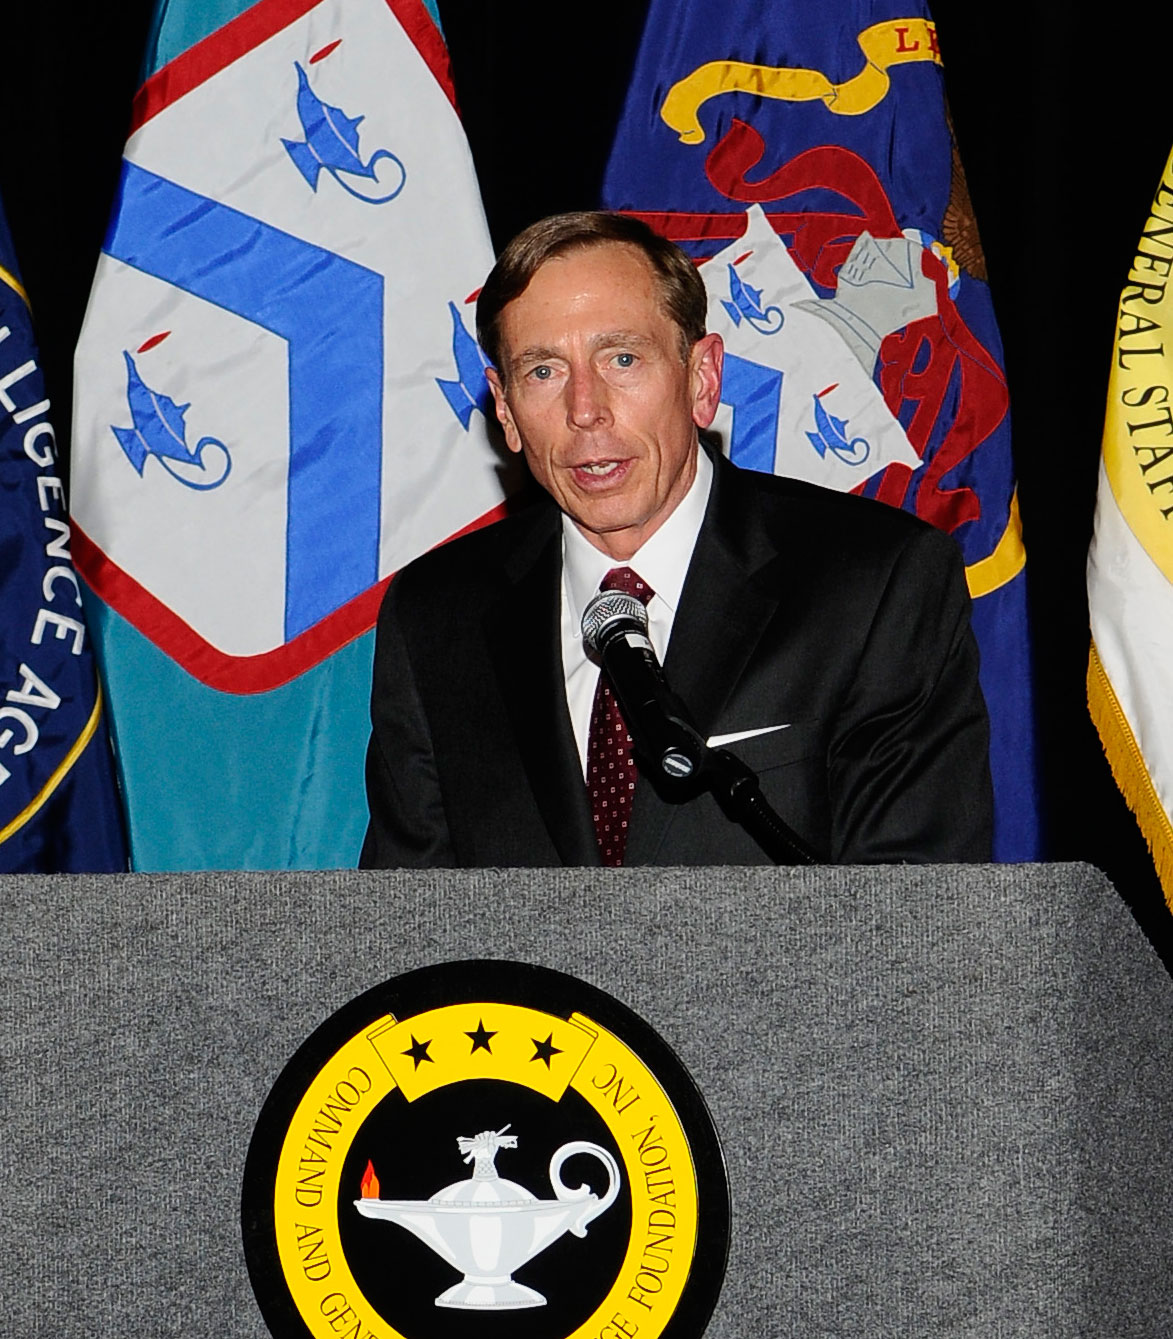 Foundation presents retired General David H. Petraeus with 2012 Distinguished Leadership Award